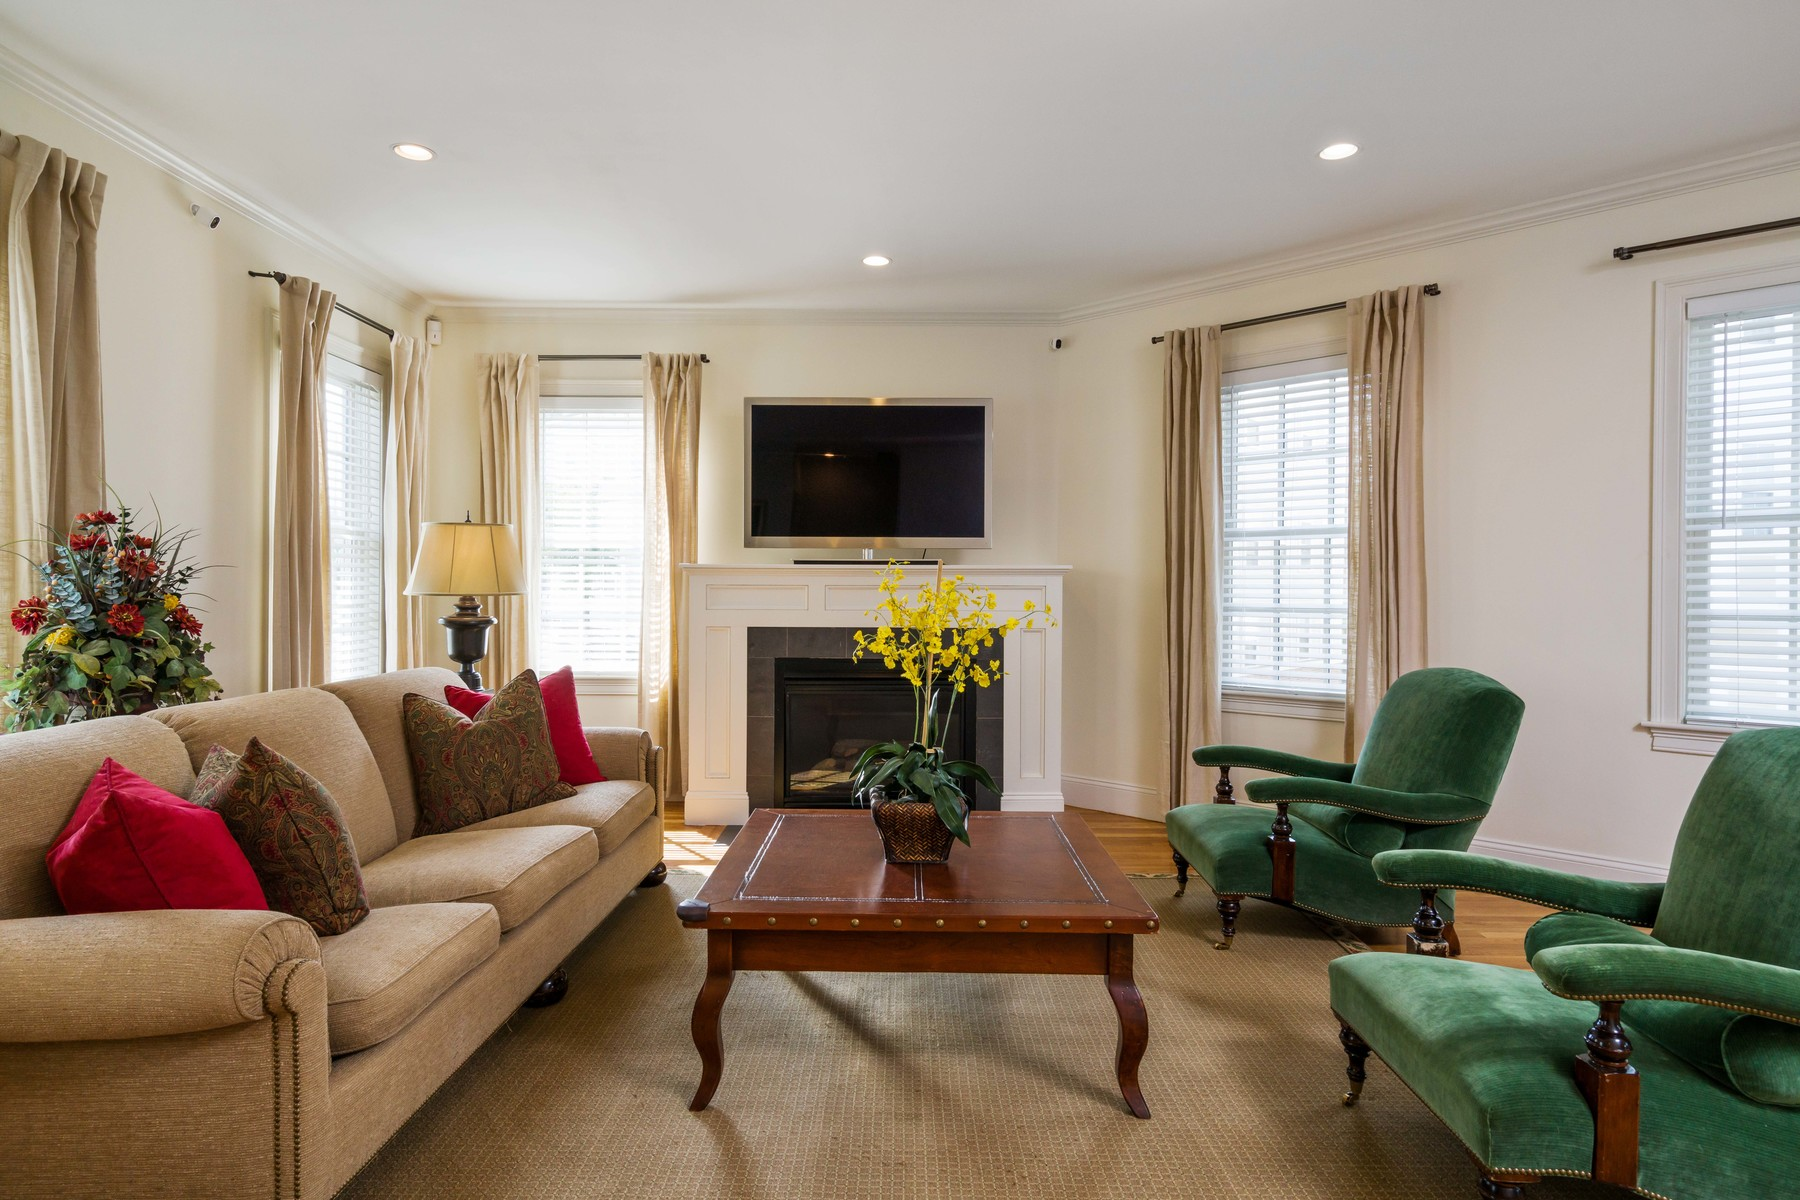 sales property at Beautiful townhouse in the heart of South Boston.